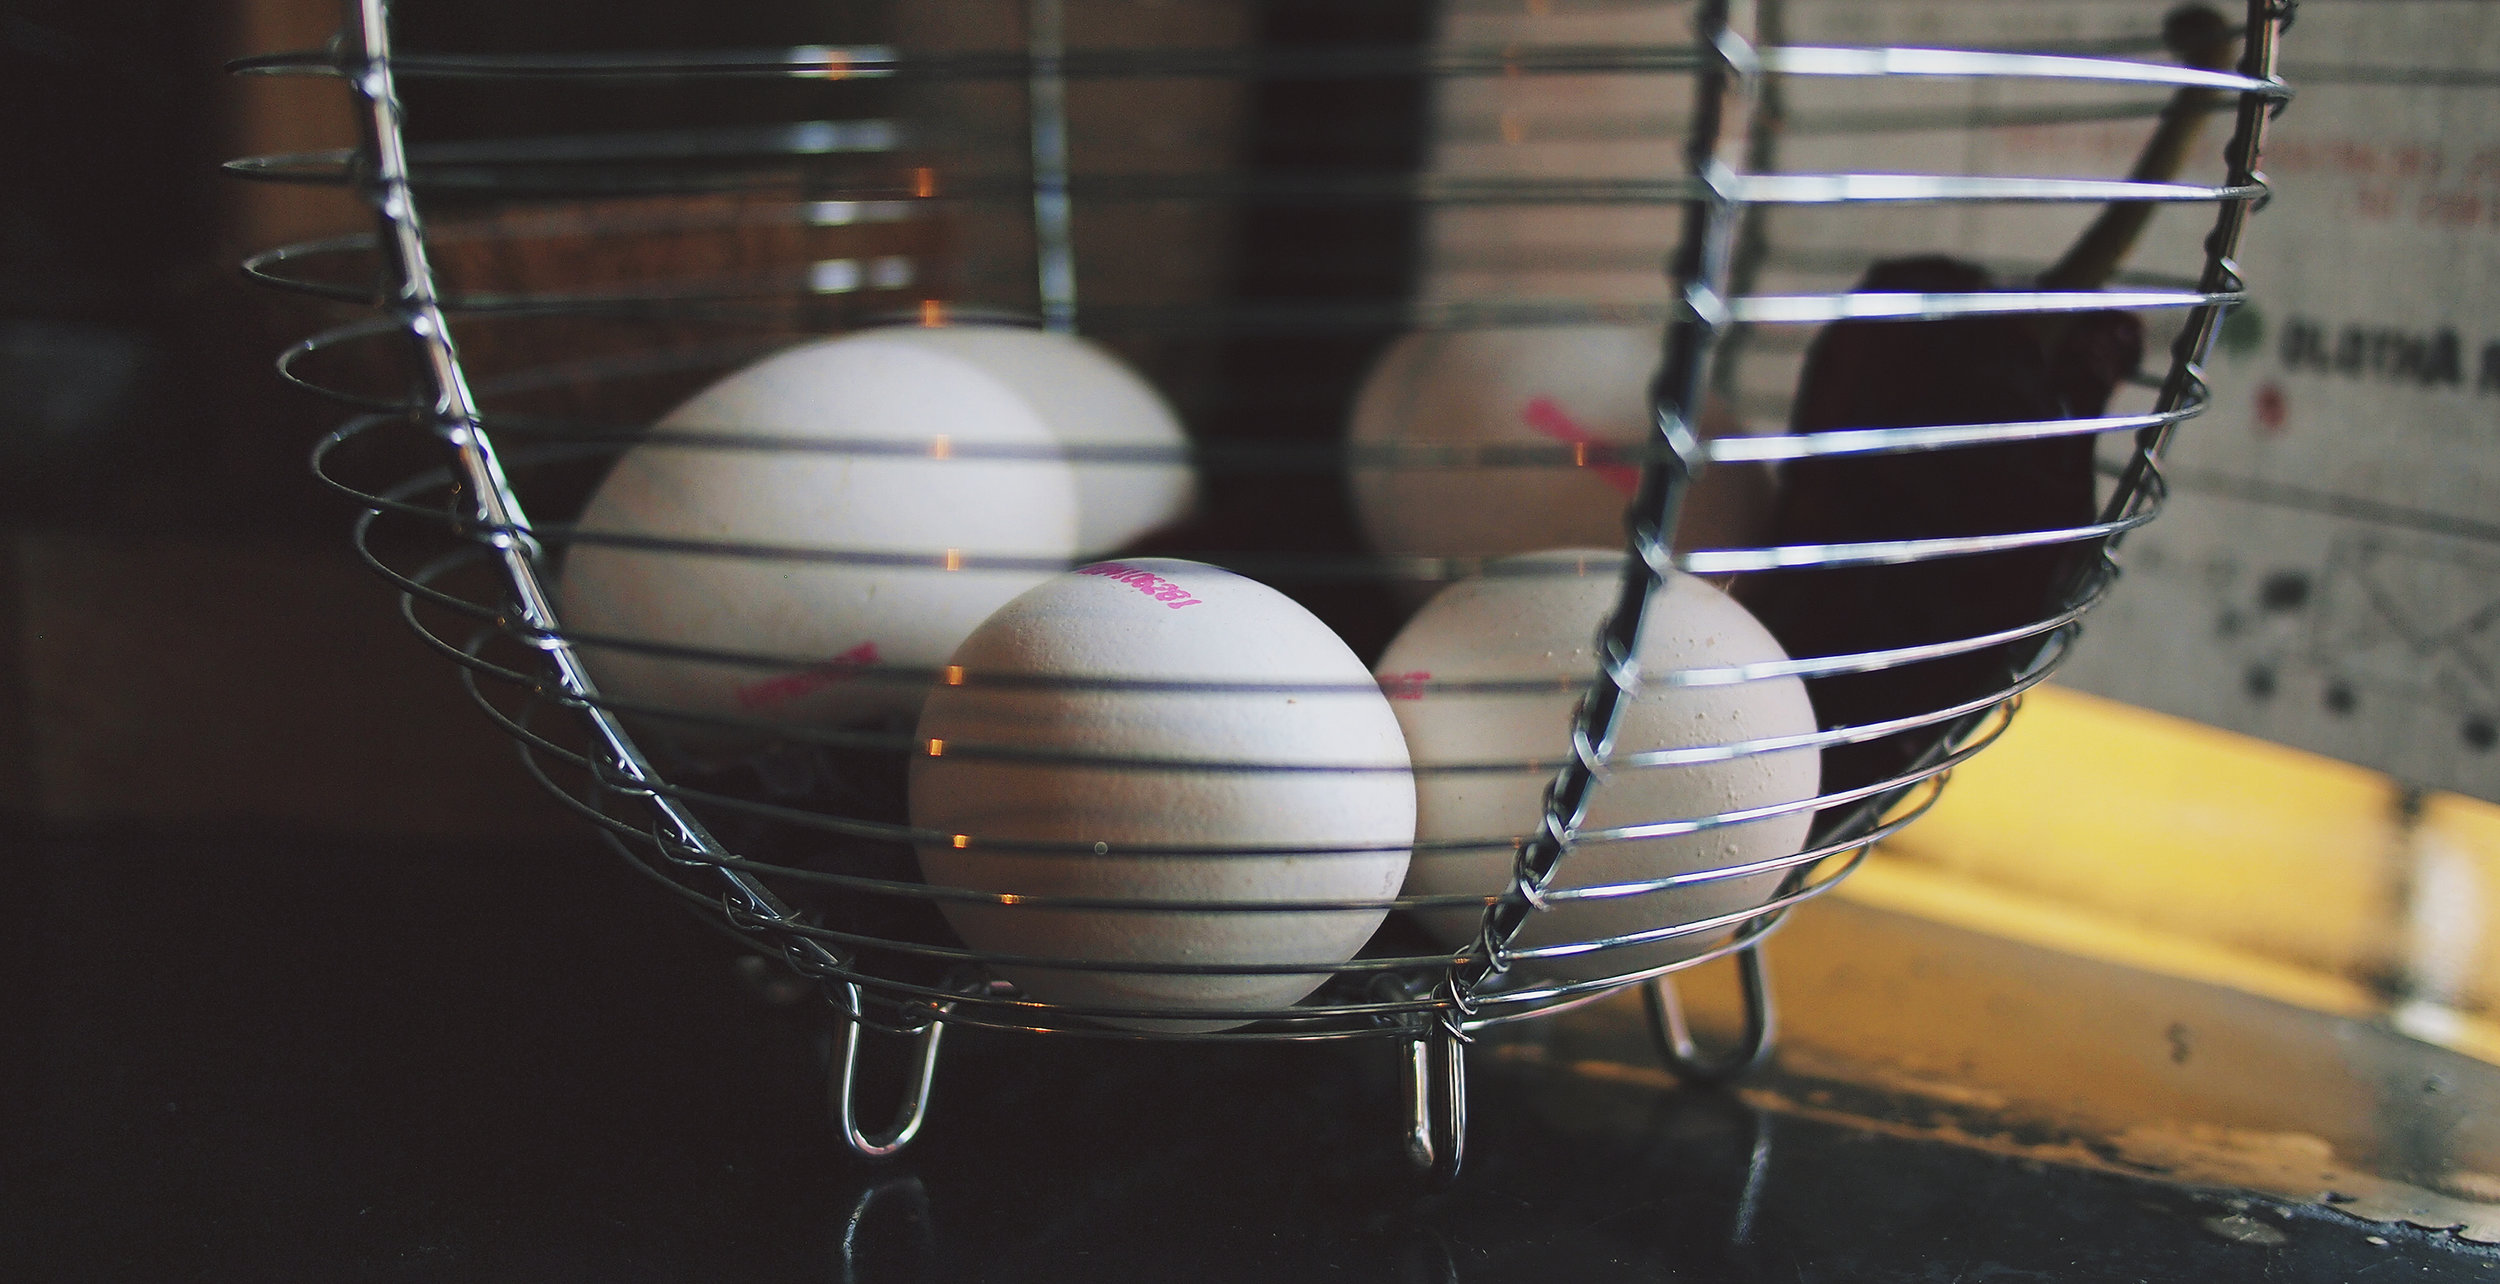 boss-fight-stock-images-photos-free-photography-eggs-basket.jpg